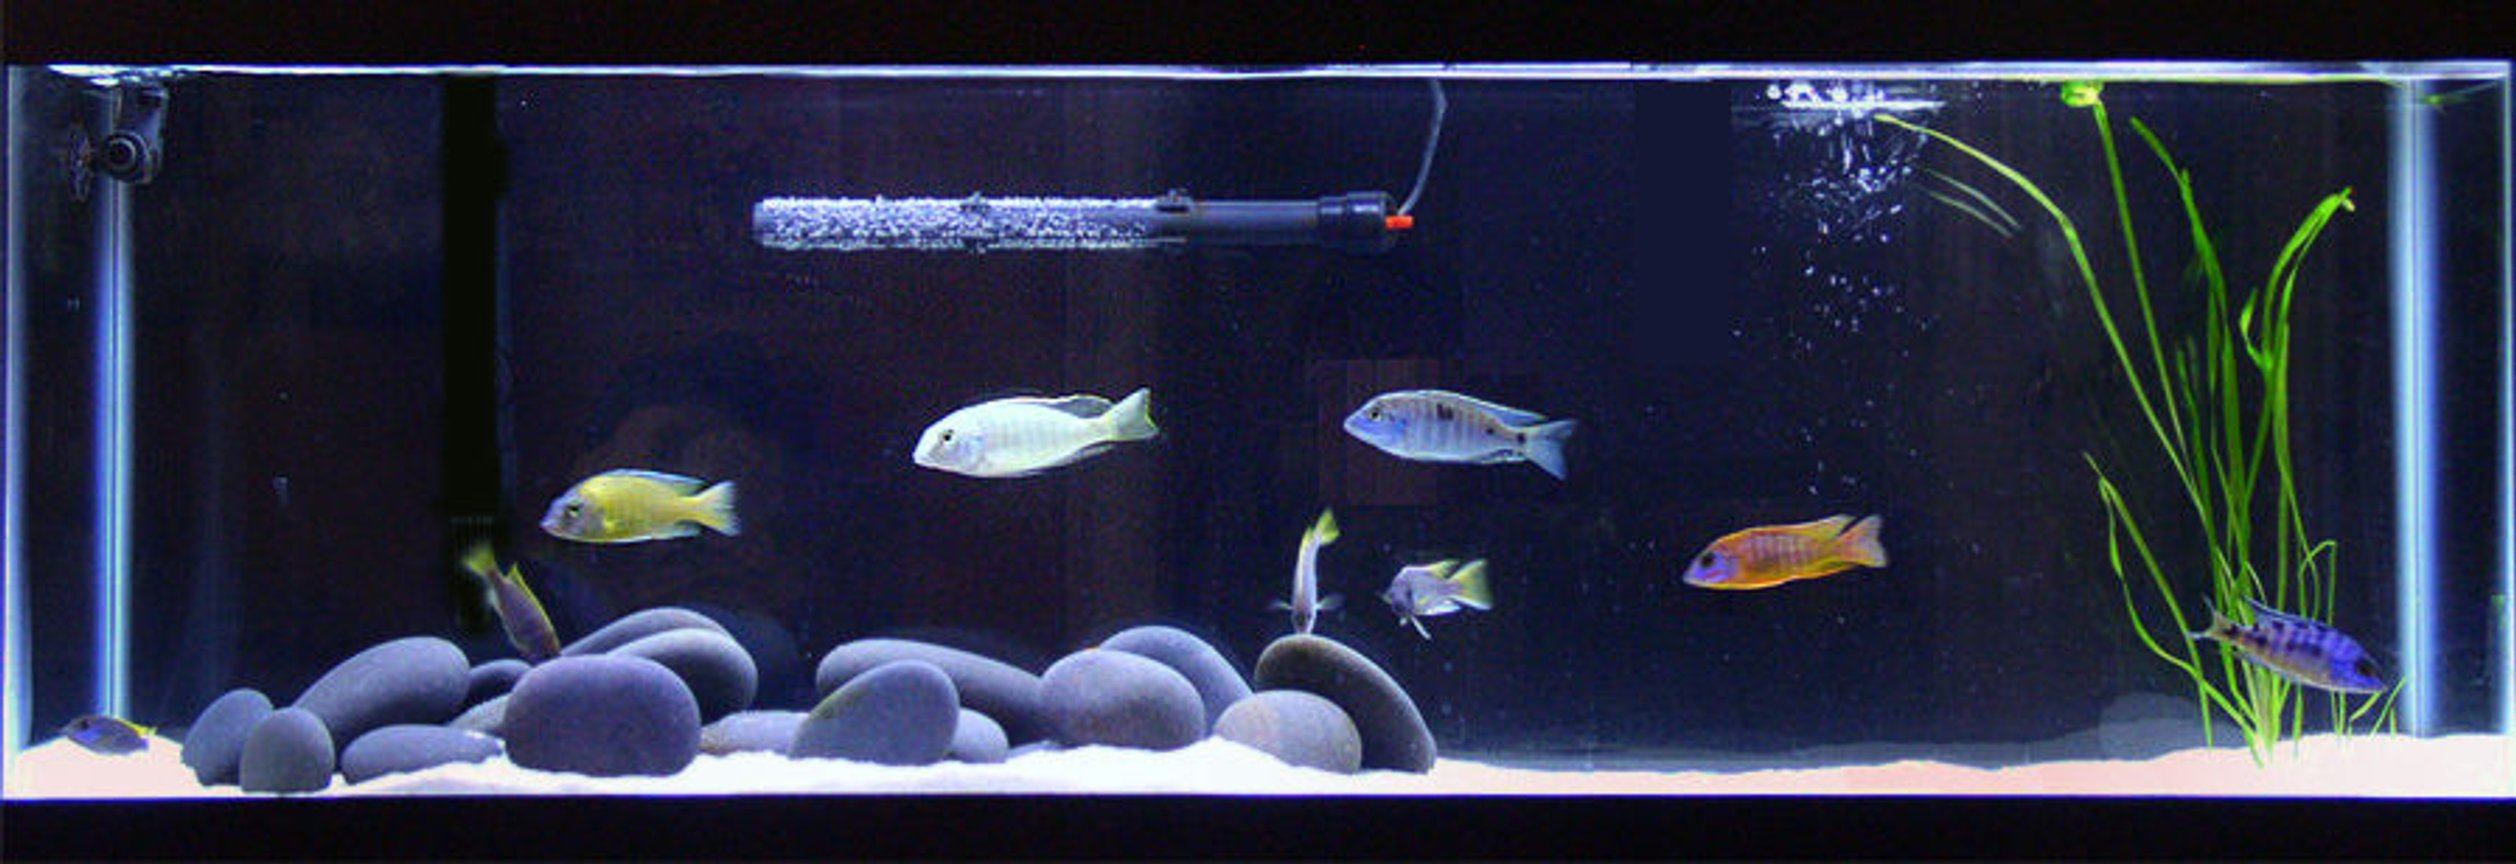 40 gallons freshwater fish tank (mostly fish and non-living decorations) - All-Glass 40 Long (48 x 12 x 17); Rena Filstar XP2 and AquaClear 50; Marineland Visi-Therm Stealth 200W; Coralife T-5 Aqualight Double Strip (10,000 K / 460nm Actinic); Mystic White II Pool Filter Sand; Mexican Beach Pebbles; Black Background